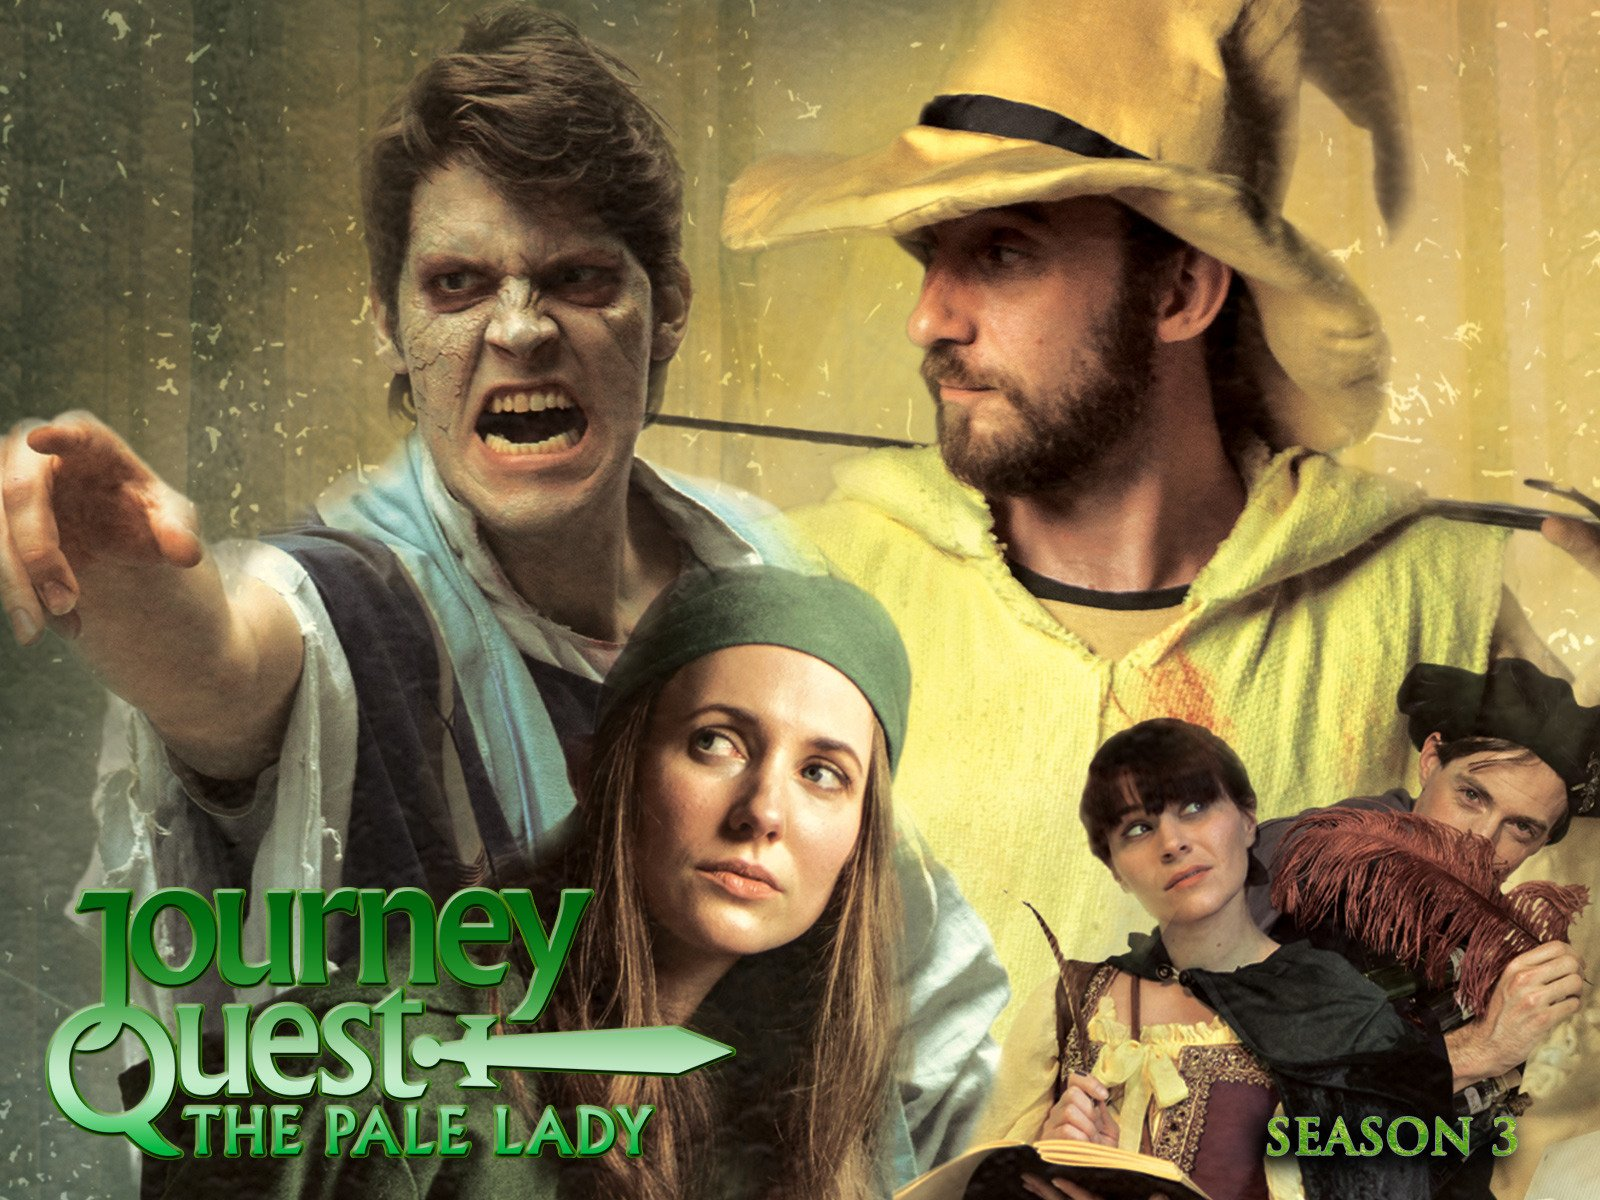 JourneyQuest - Season 3